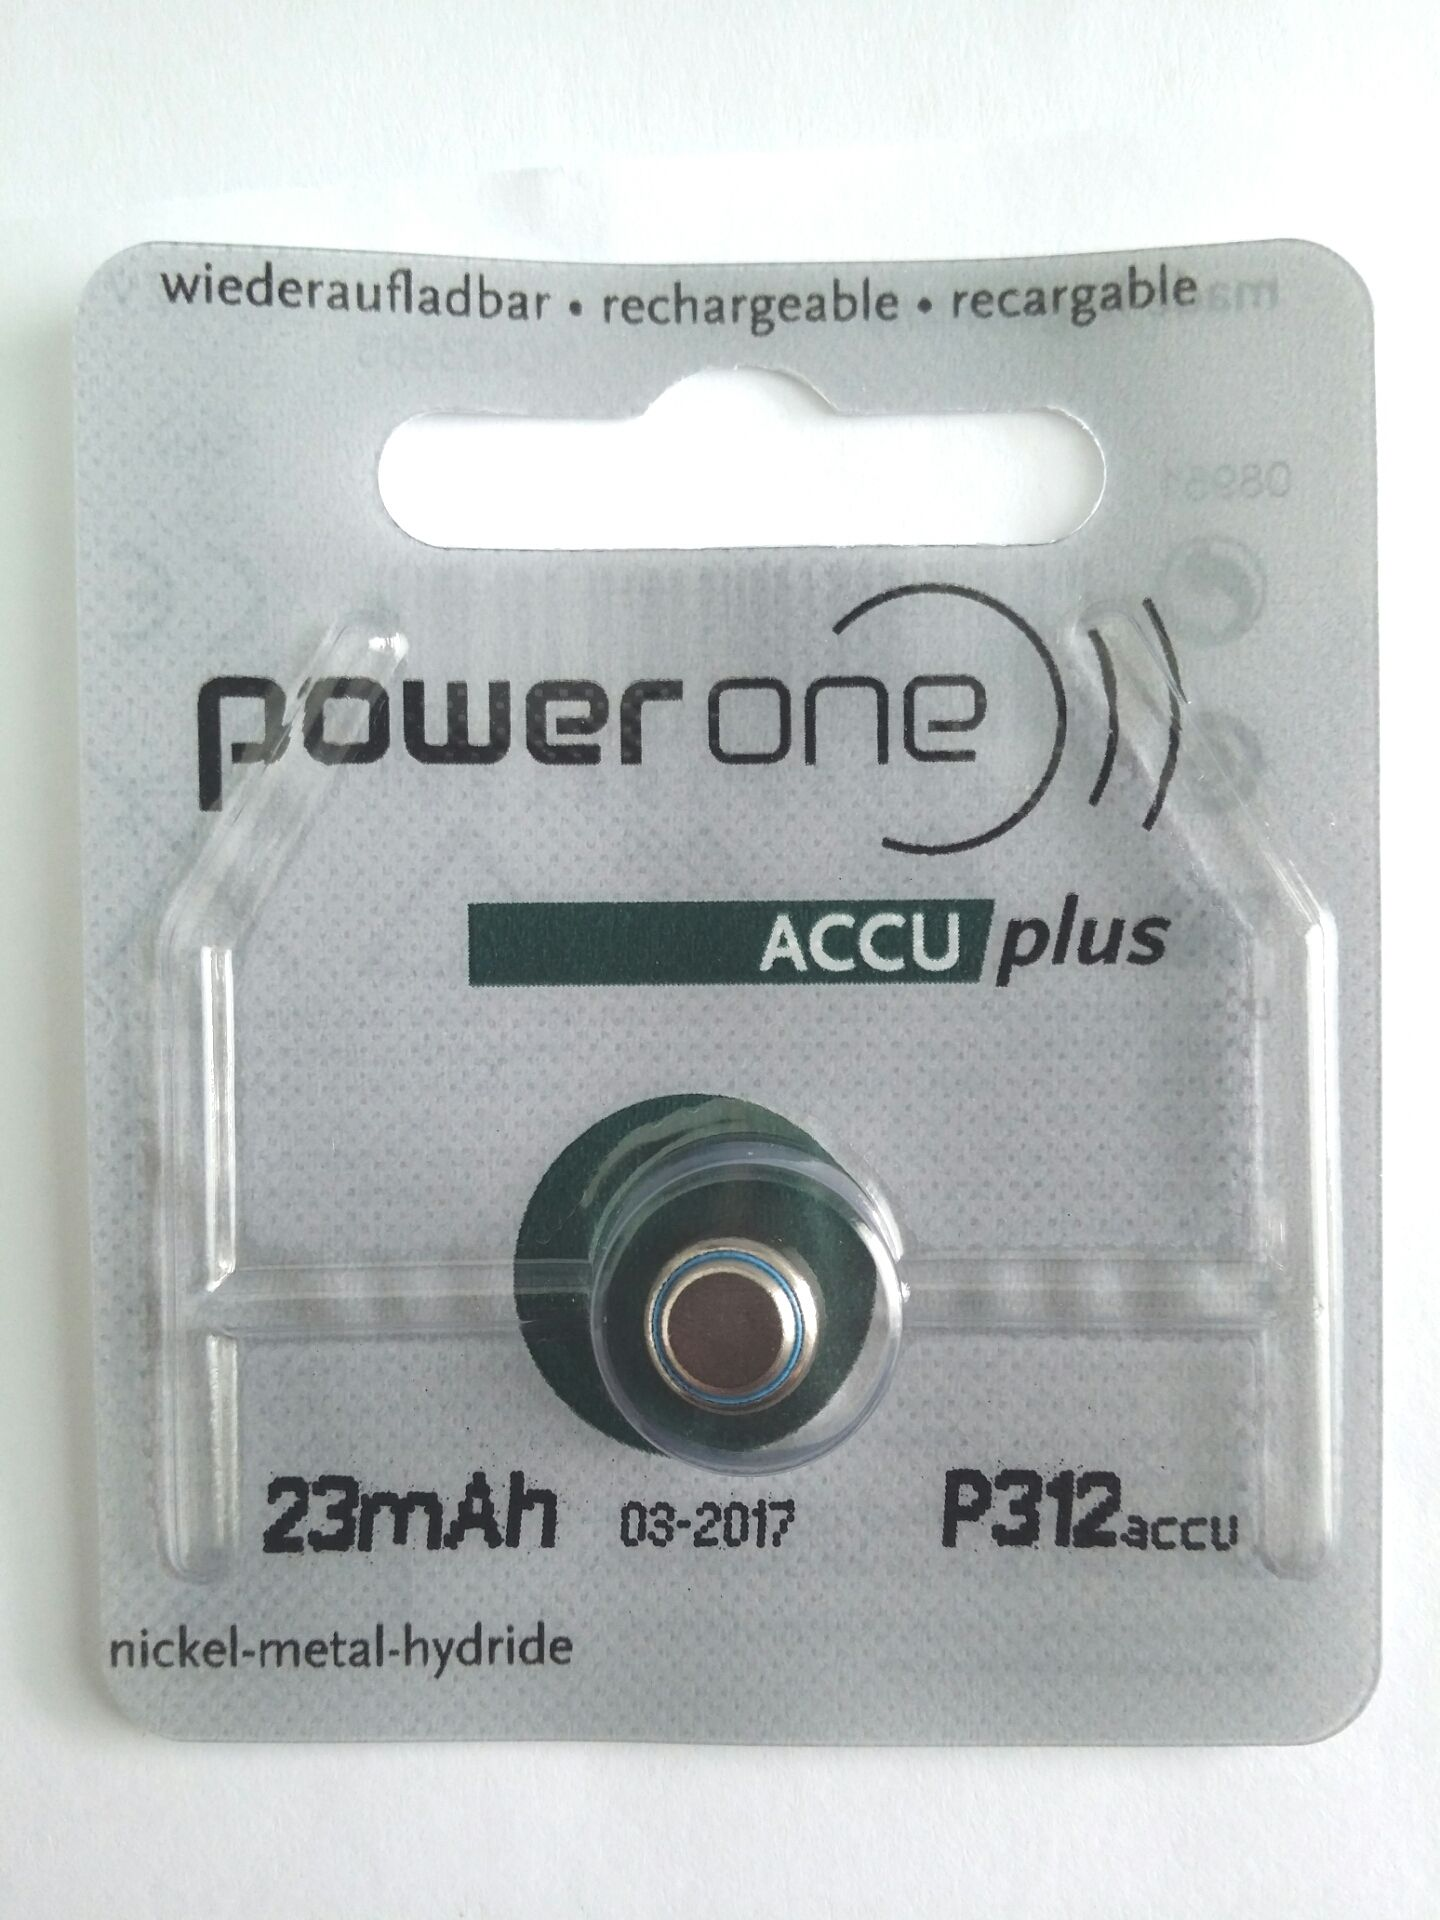 Accu Batterien Power One Accu Plus Rechargeable Battery